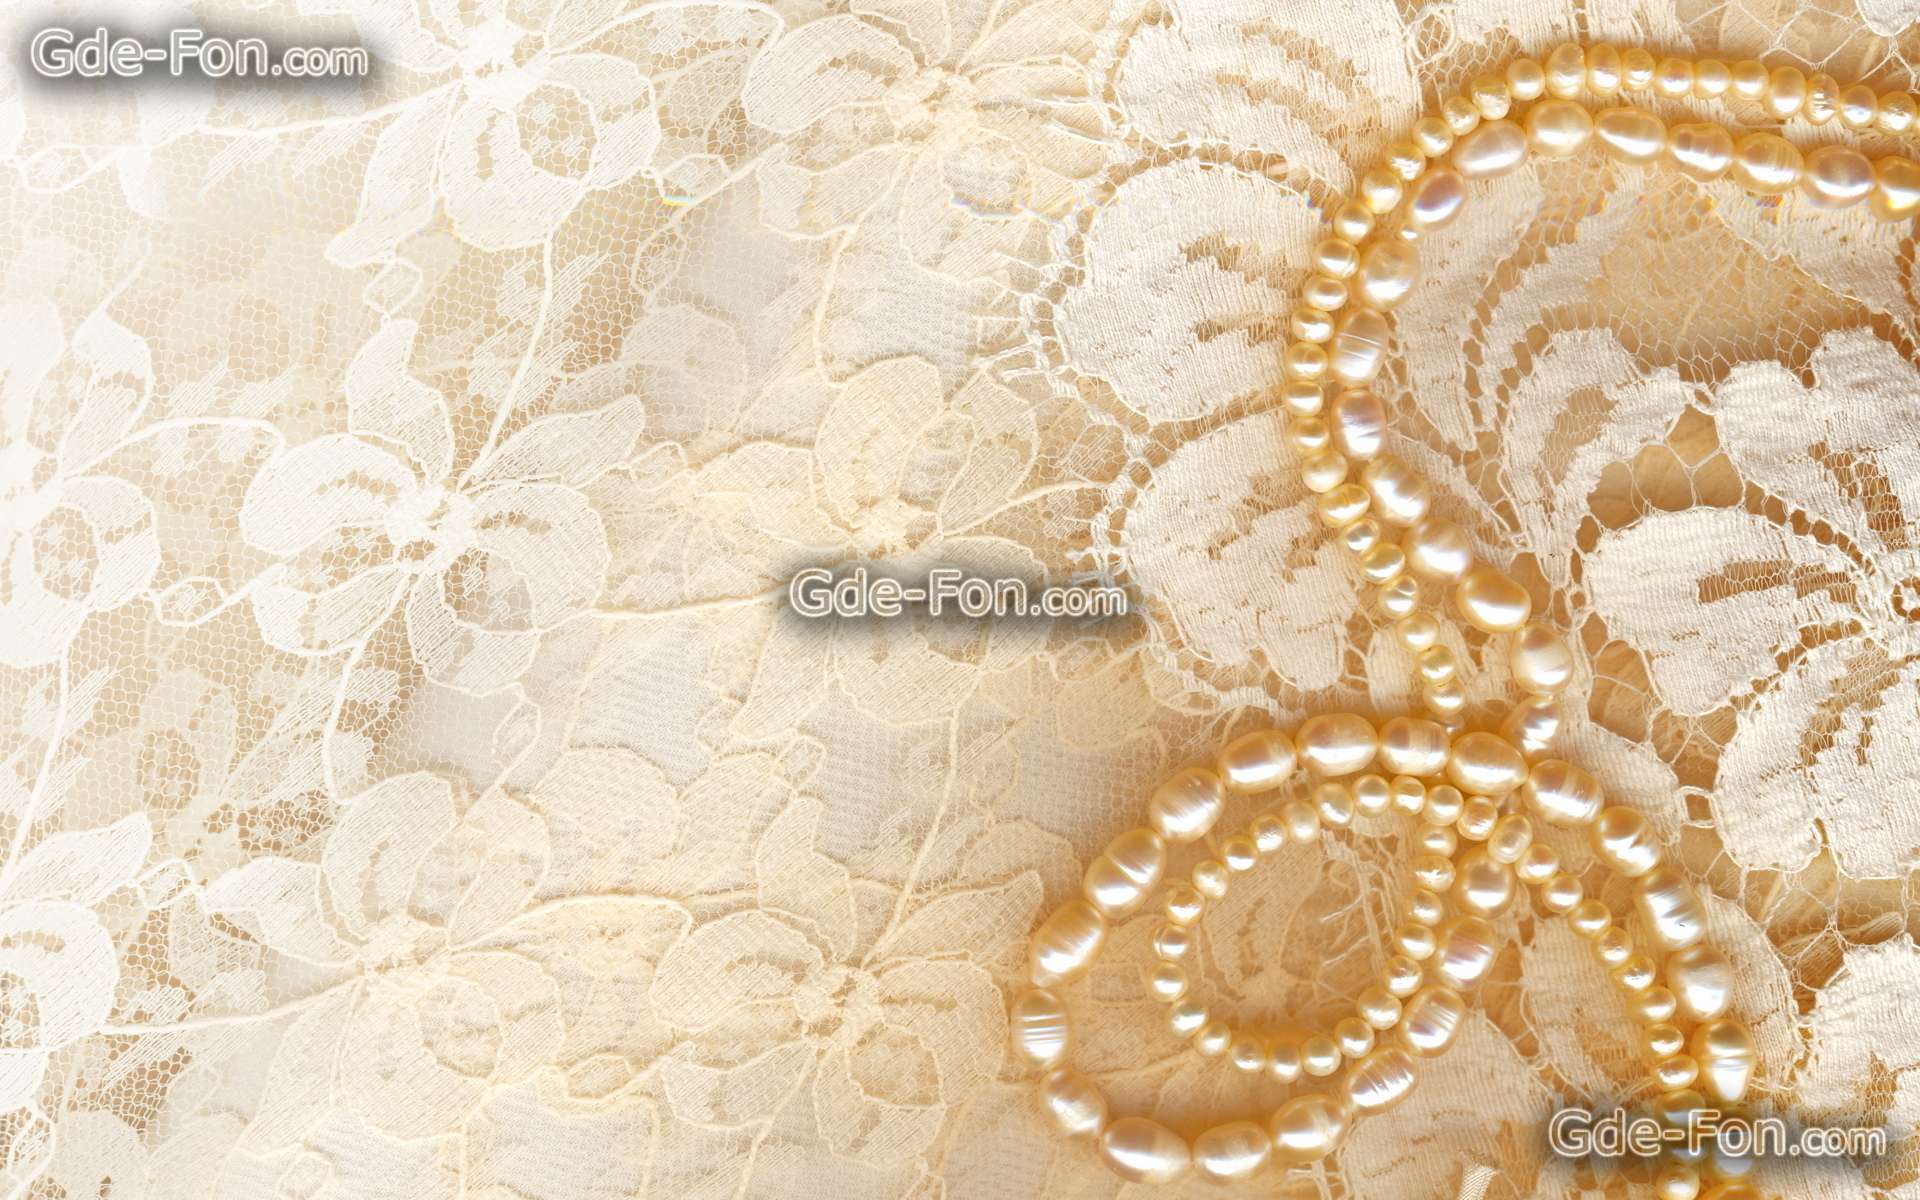 25 wallpaper different jewelry beads gold free desktop